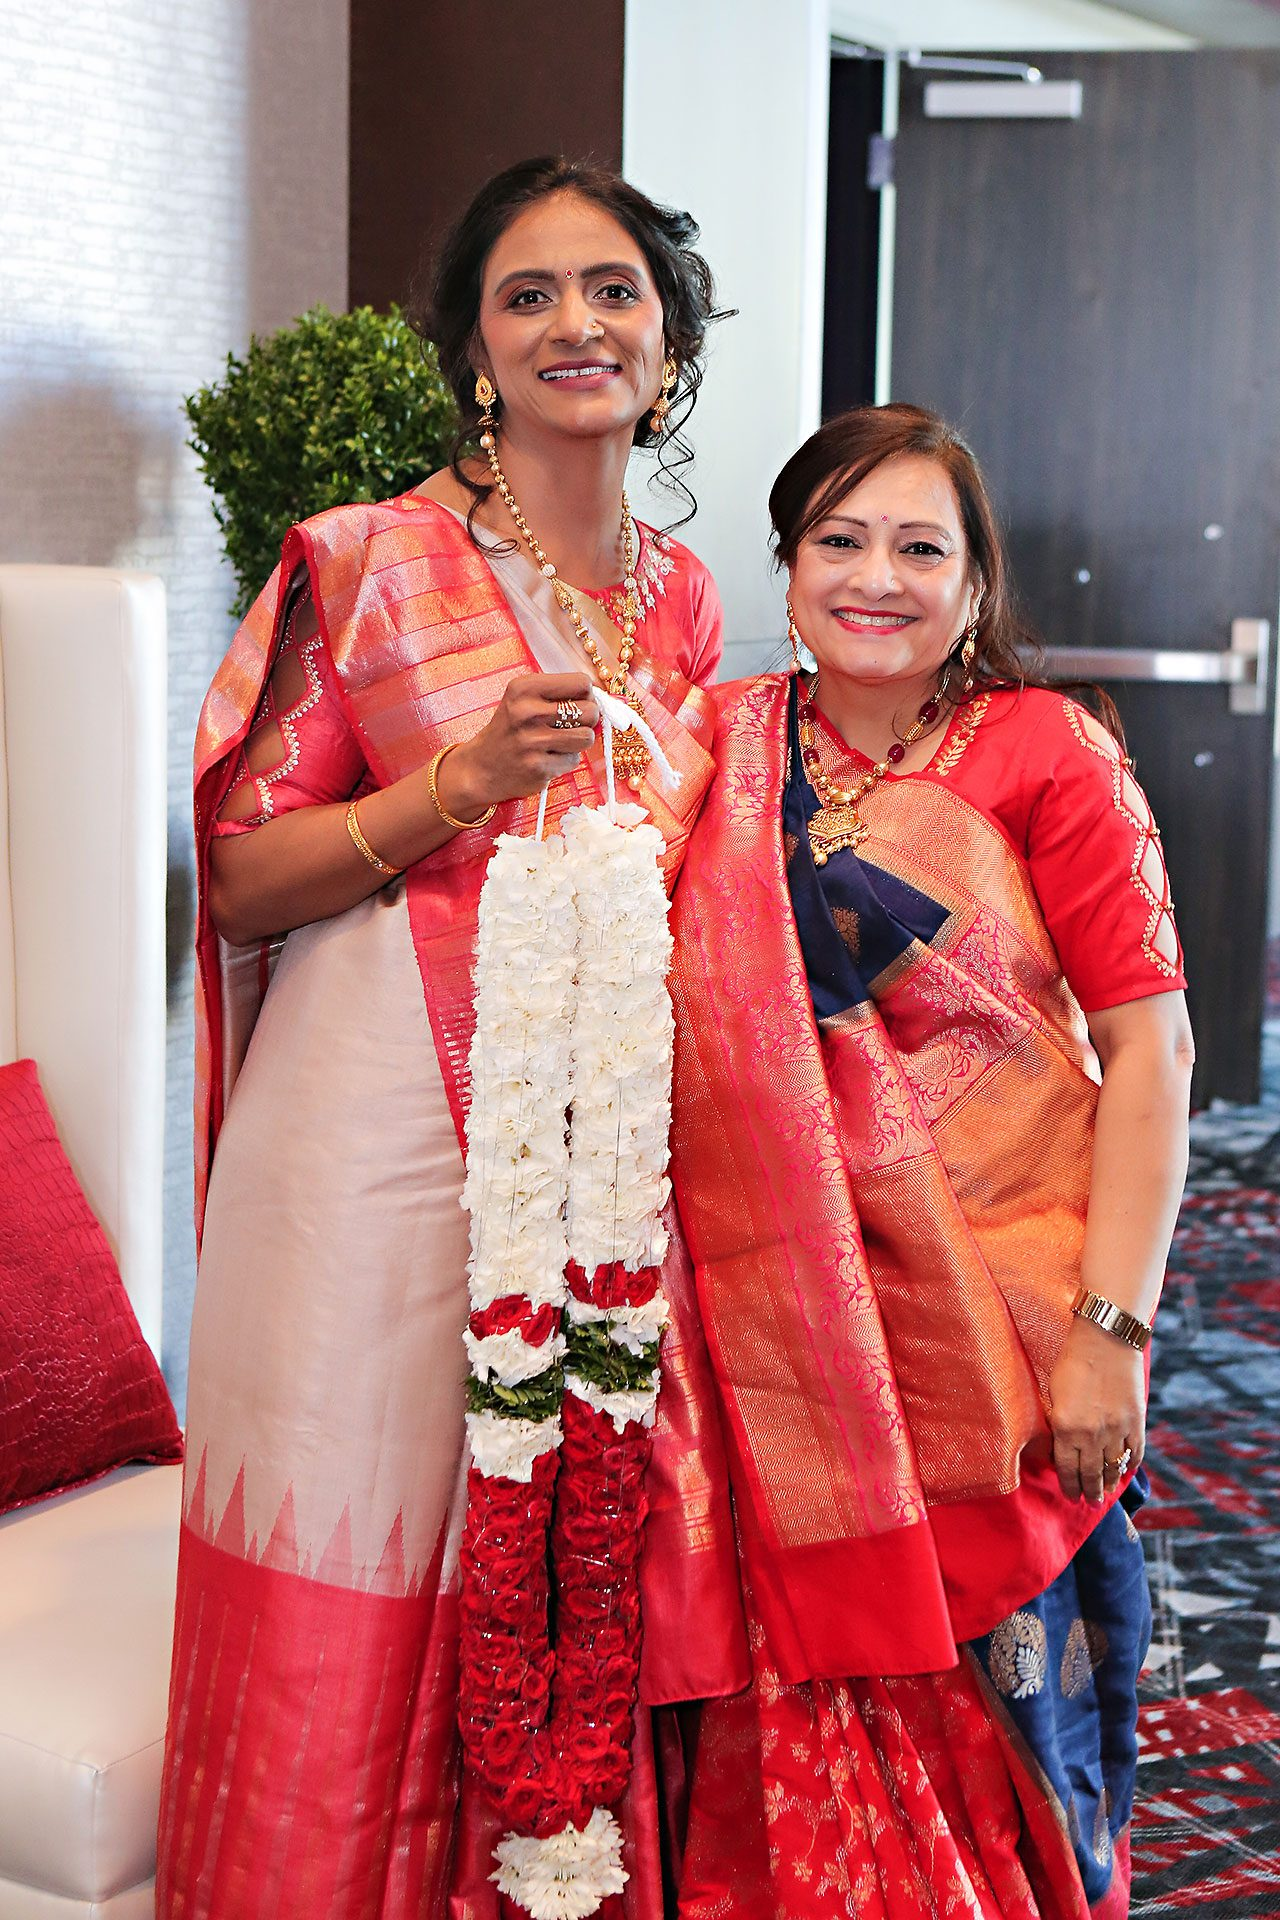 Neil Ganesh Pooja Embassy Suites Conference Center Noblesville 115